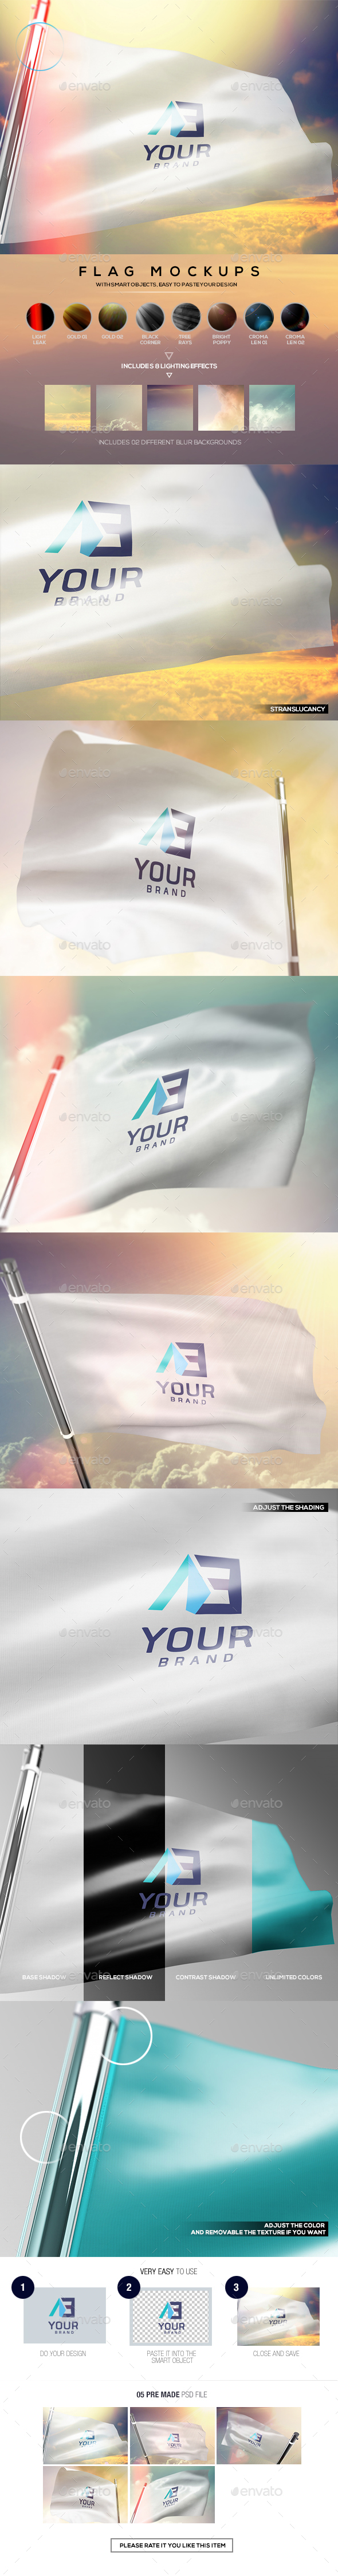 Flag Mockups - Miscellaneous Product Mock-Ups